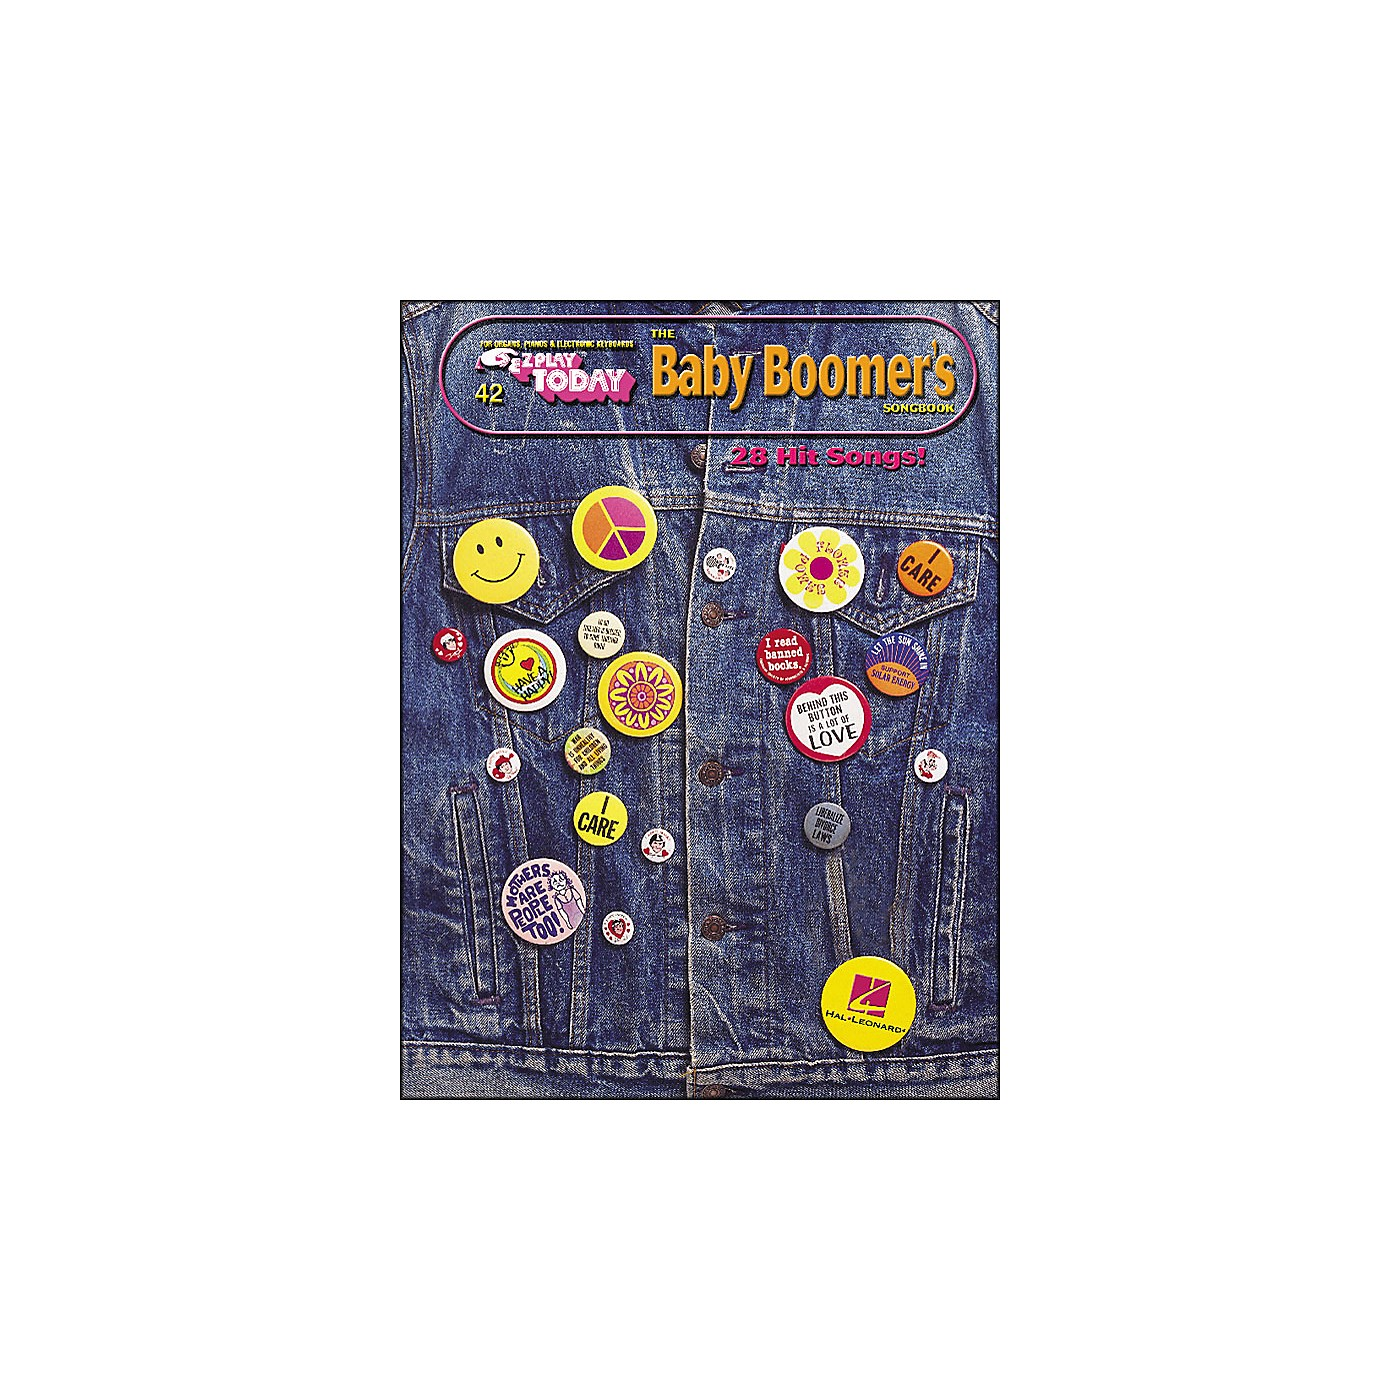 Hal Leonard Baby Boomers Songbook E-Z Play 42 thumbnail